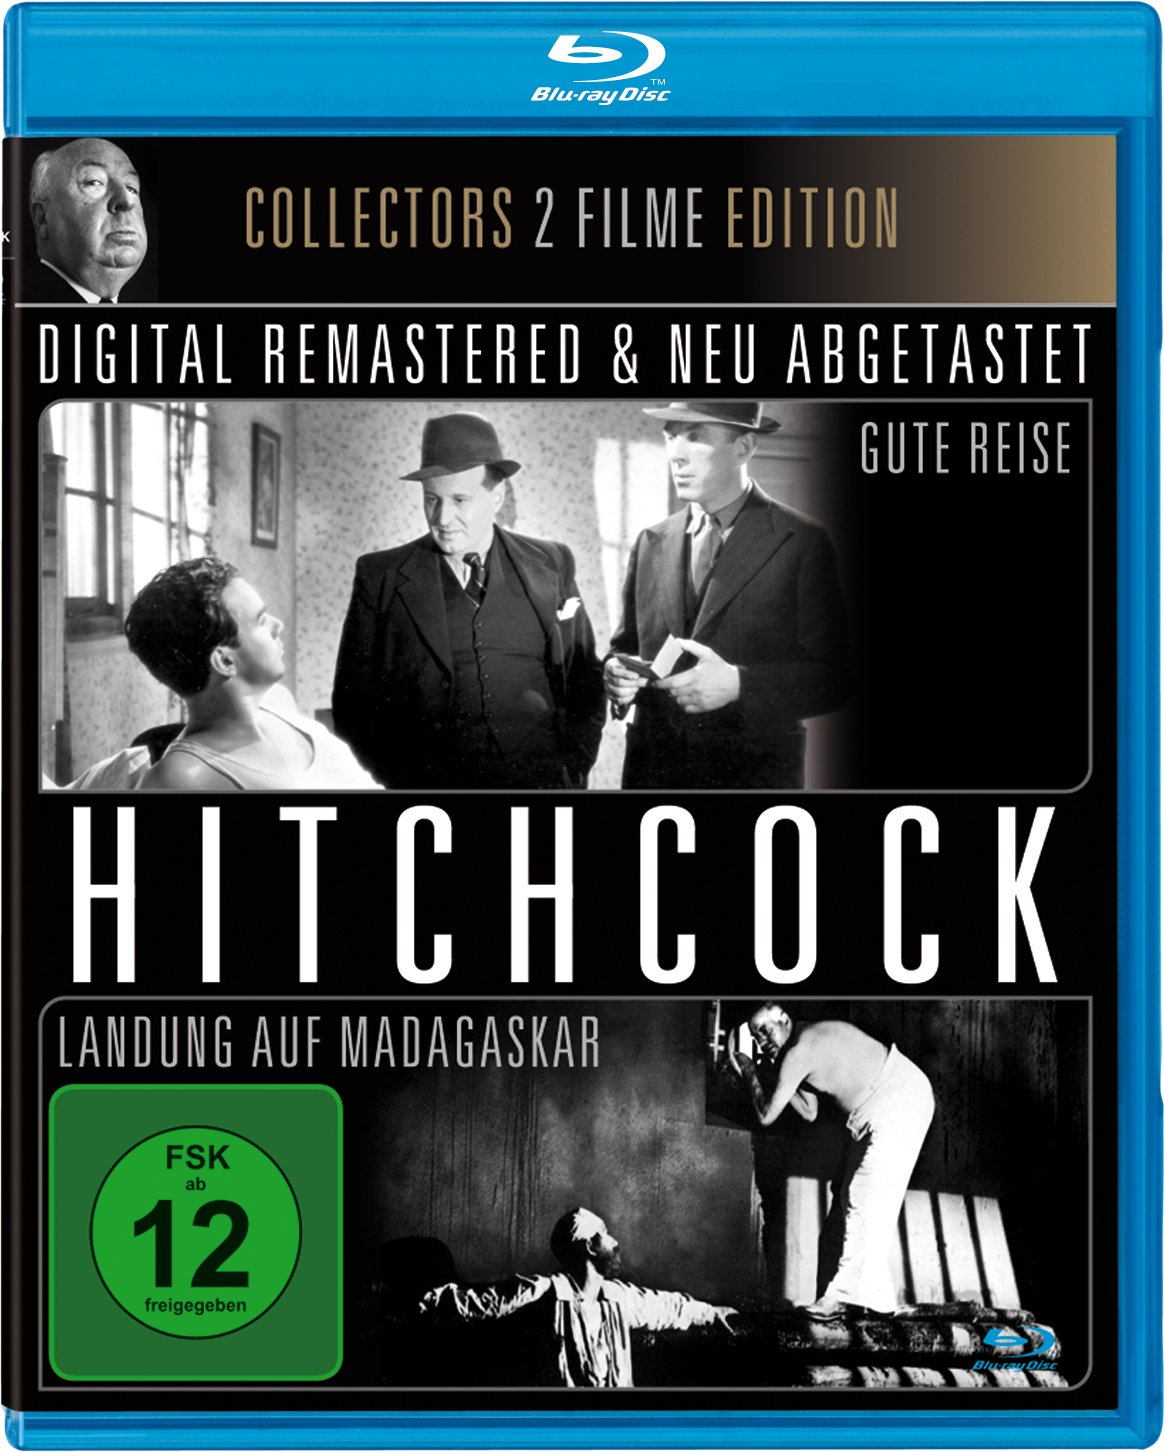 You little star. Not. This German Great Movies Blu-ray has Hitch's wartime shorts, Bon Voyage and Aventure Malgache (1944), in their original French only and with no subs whatsoever. The icing on the cake? It's in particularly poor standard definition. You'd be far better off with any of the licensed, subtitled releases listed here.